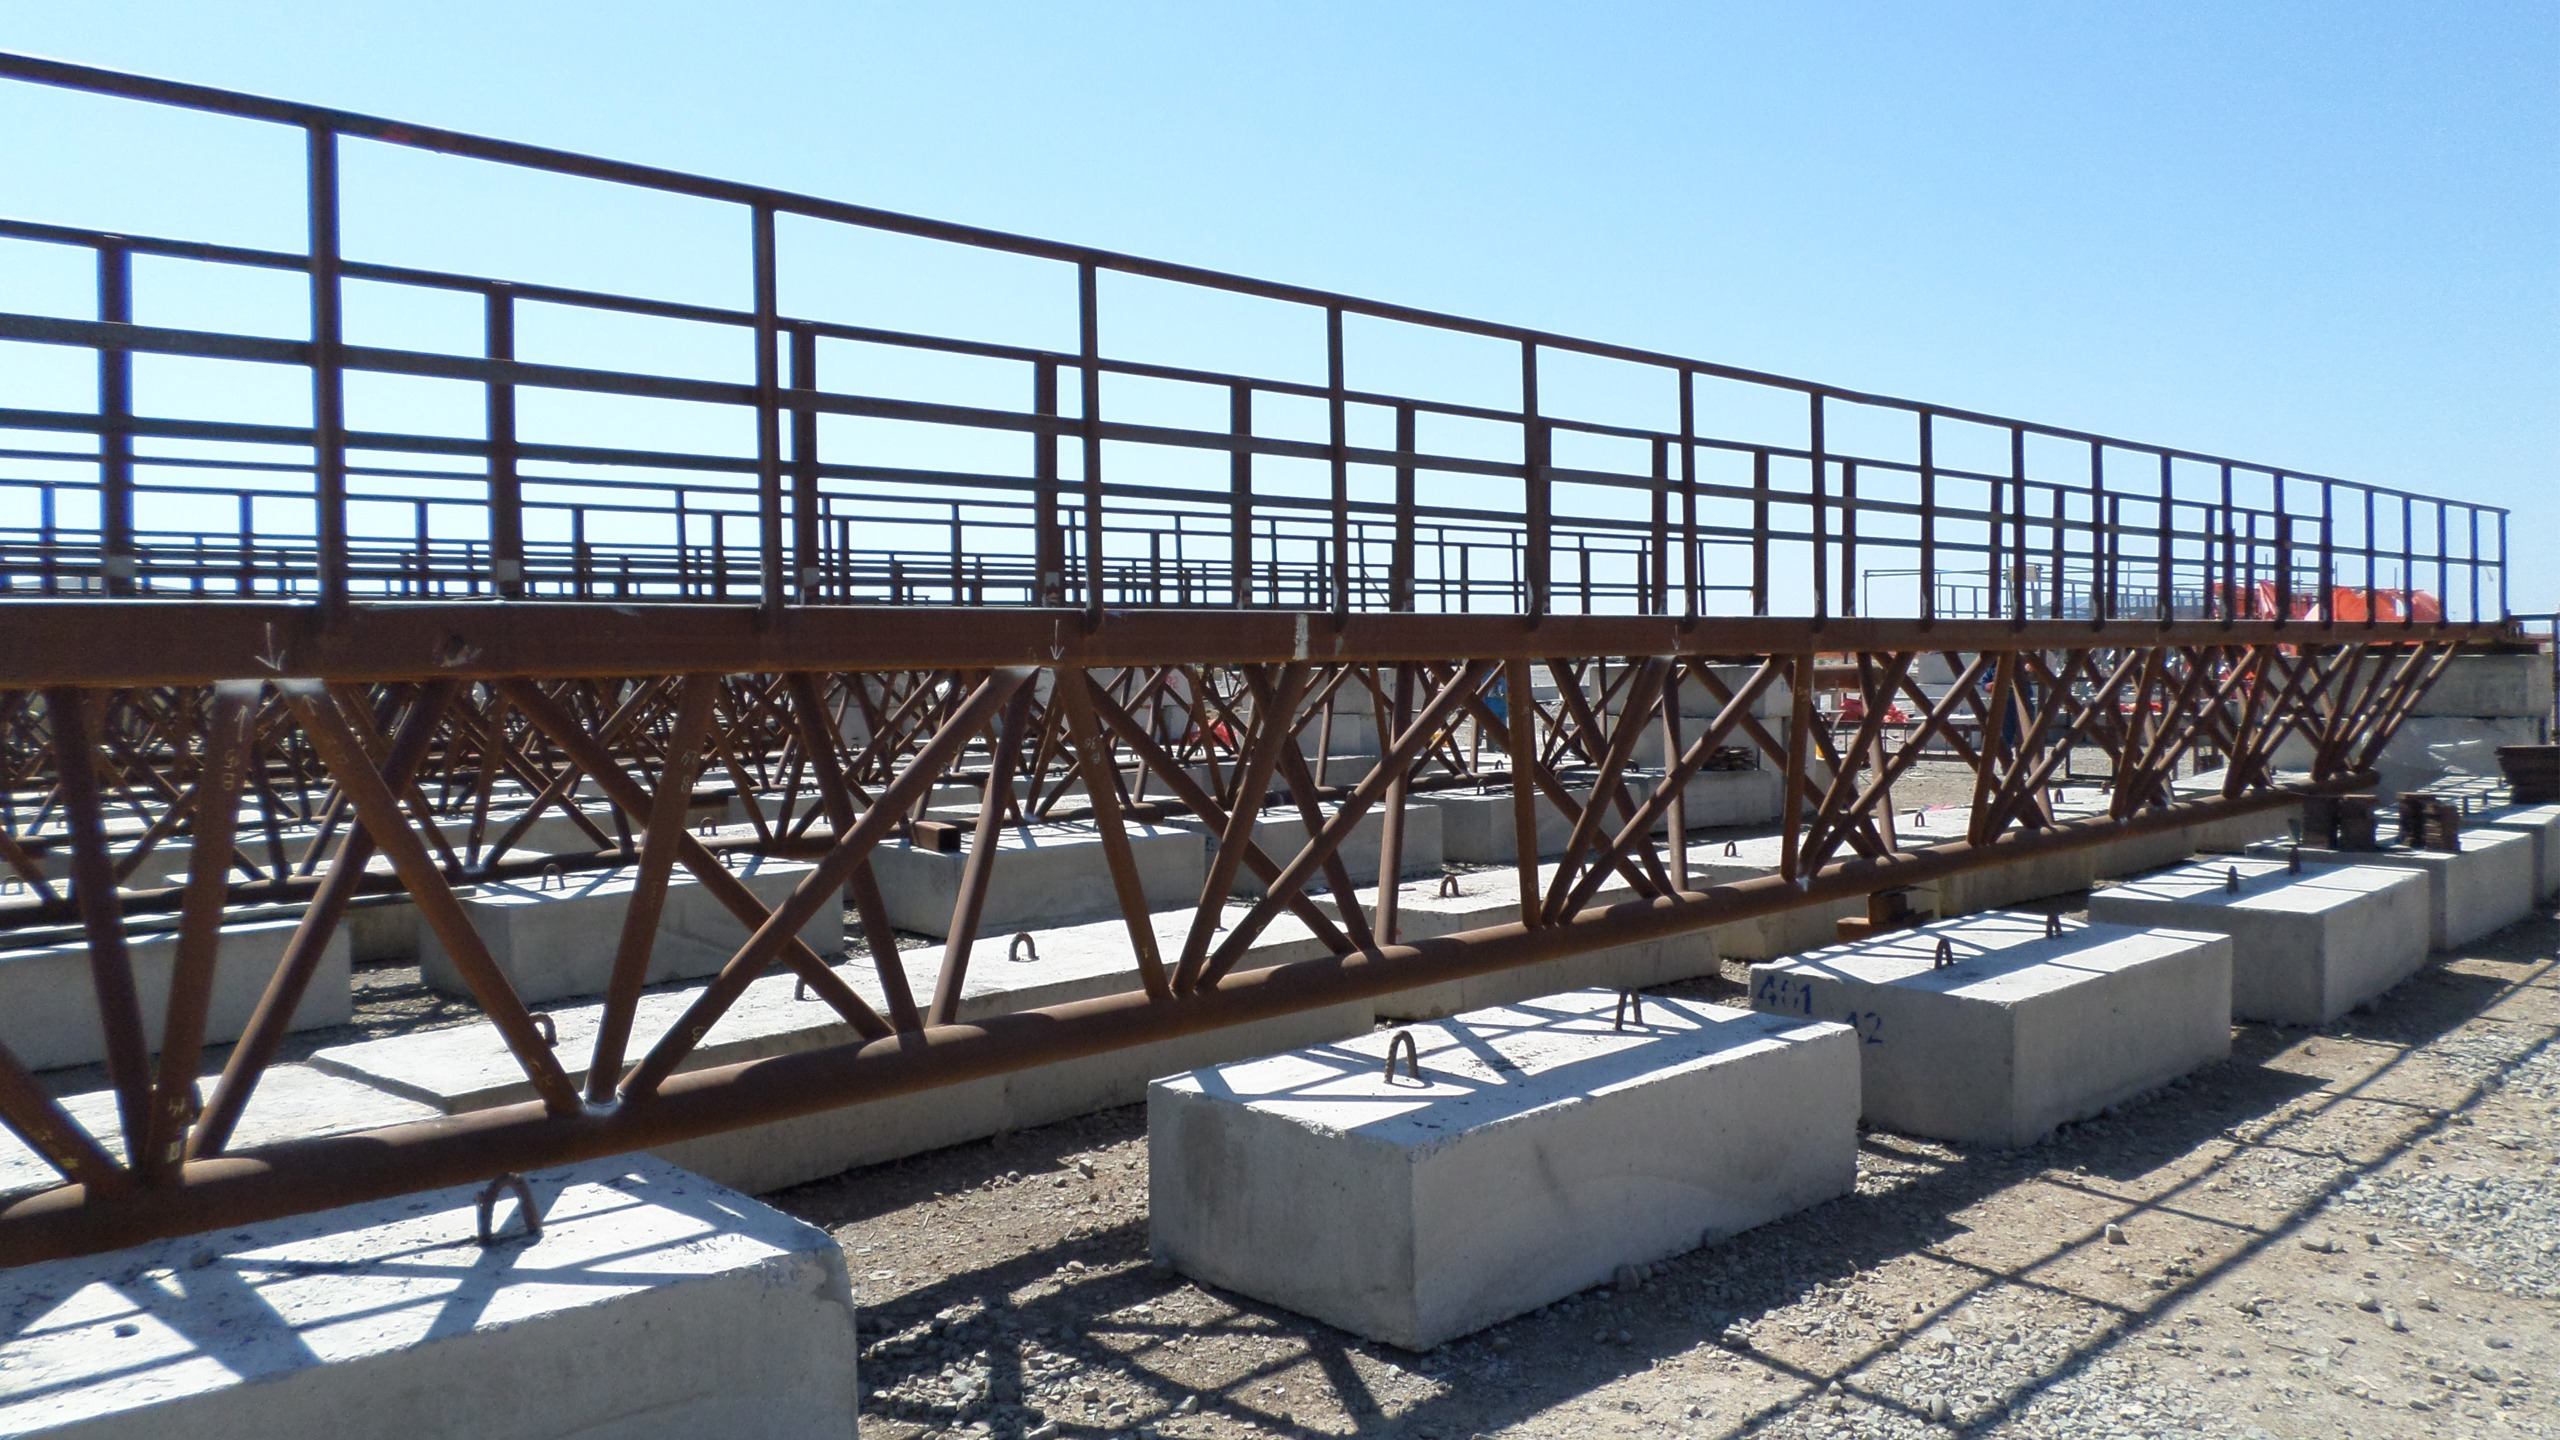 Marine Project – Catwalk and Dikewall Manufacturing, Blasting and Painting Works